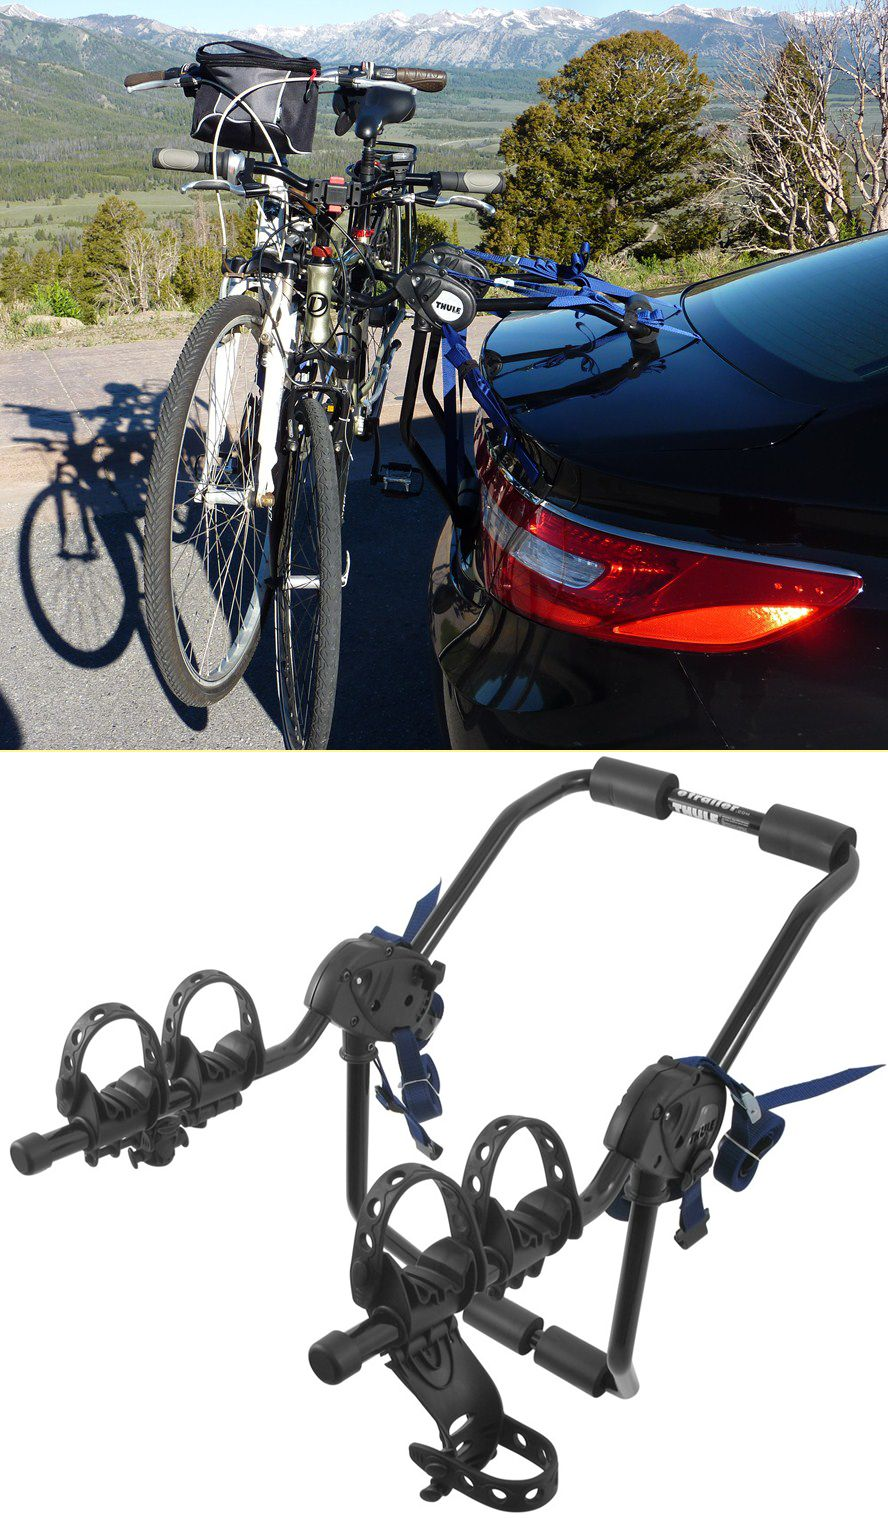 advice fat nv and sherpa base add carrier hitch need rack kuat bike review com on zpsayh mtbr beta package